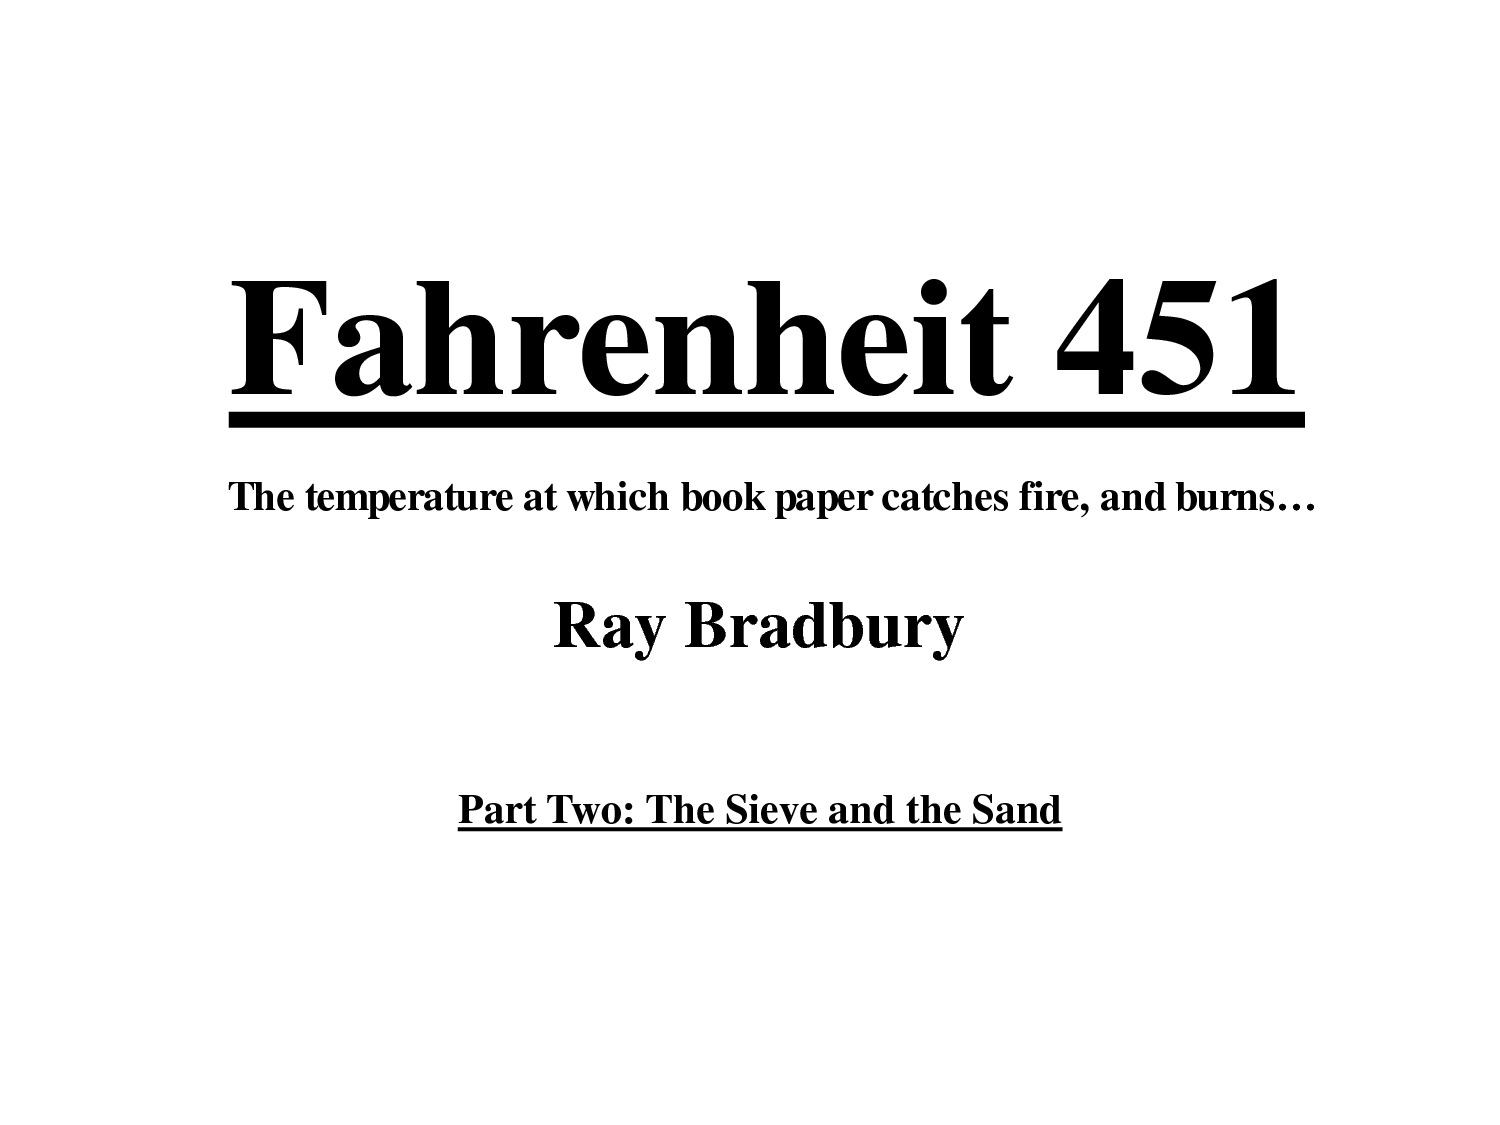 Fahrenheit 451 Quotes About Burning Books With Page Numbers: Fahrenheit 451 Part 1 Quotes. QuotesGram